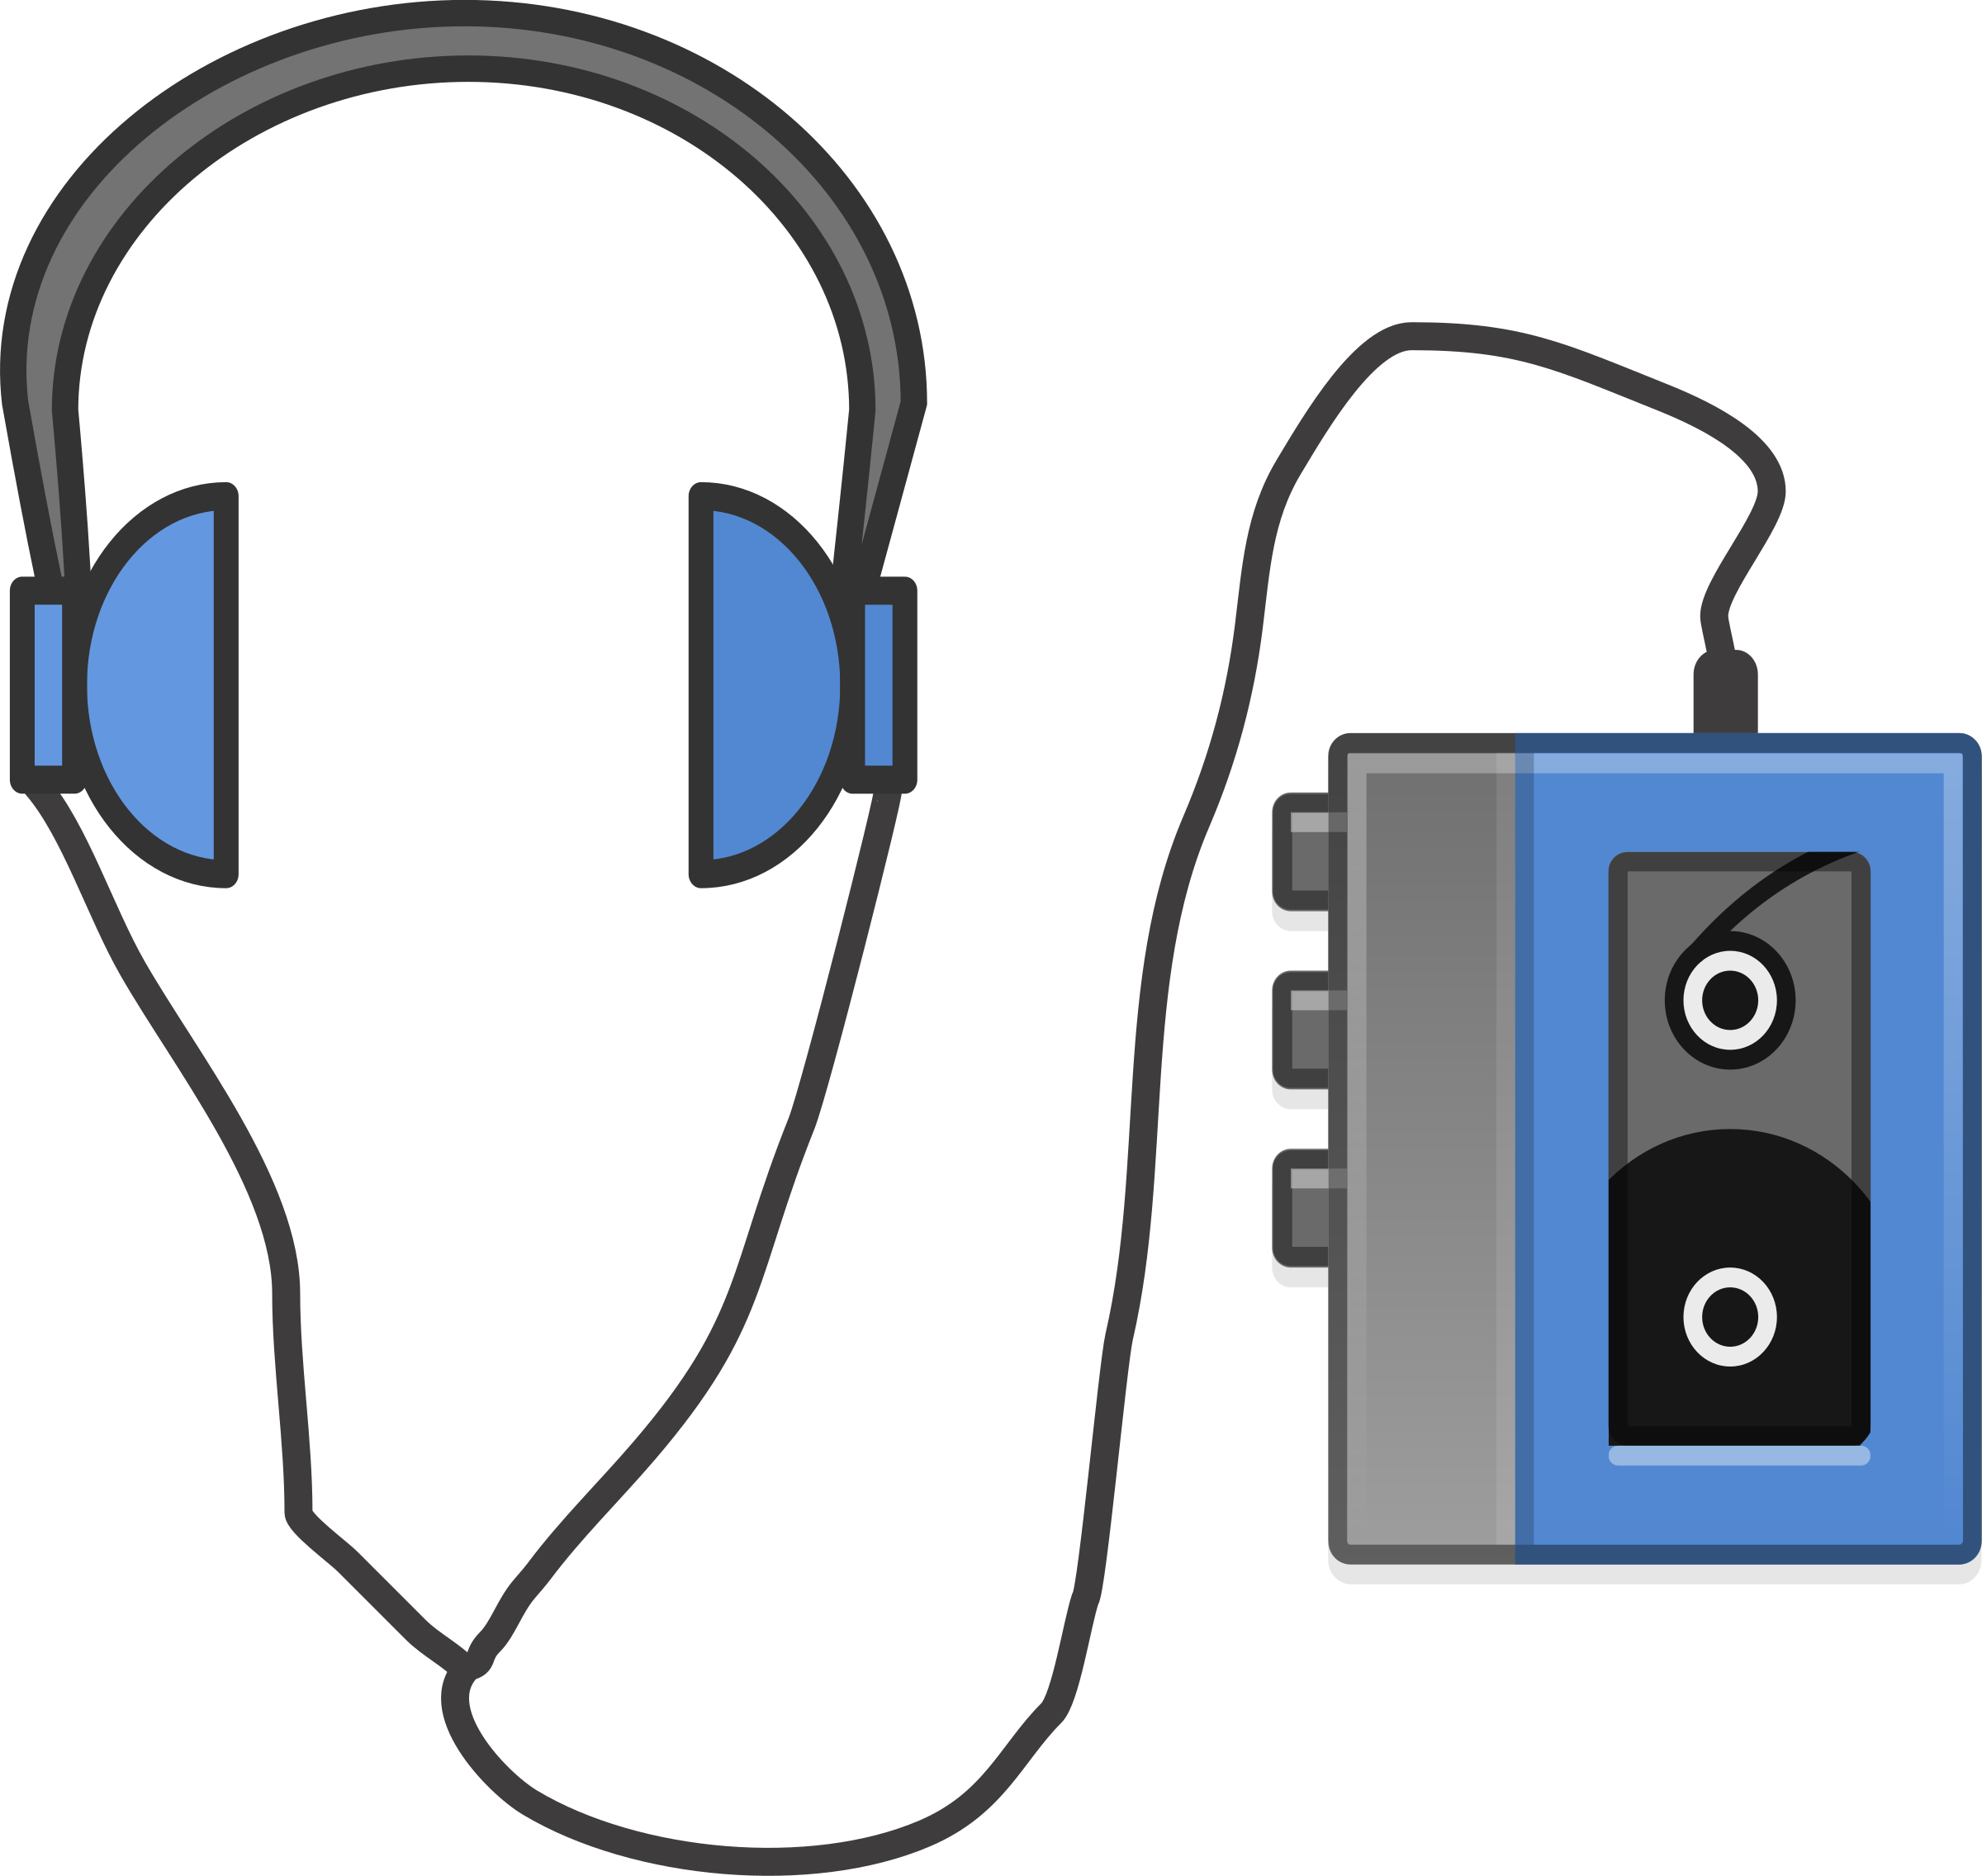 Headphones with portable tapeplayer. Headphone clipart simple